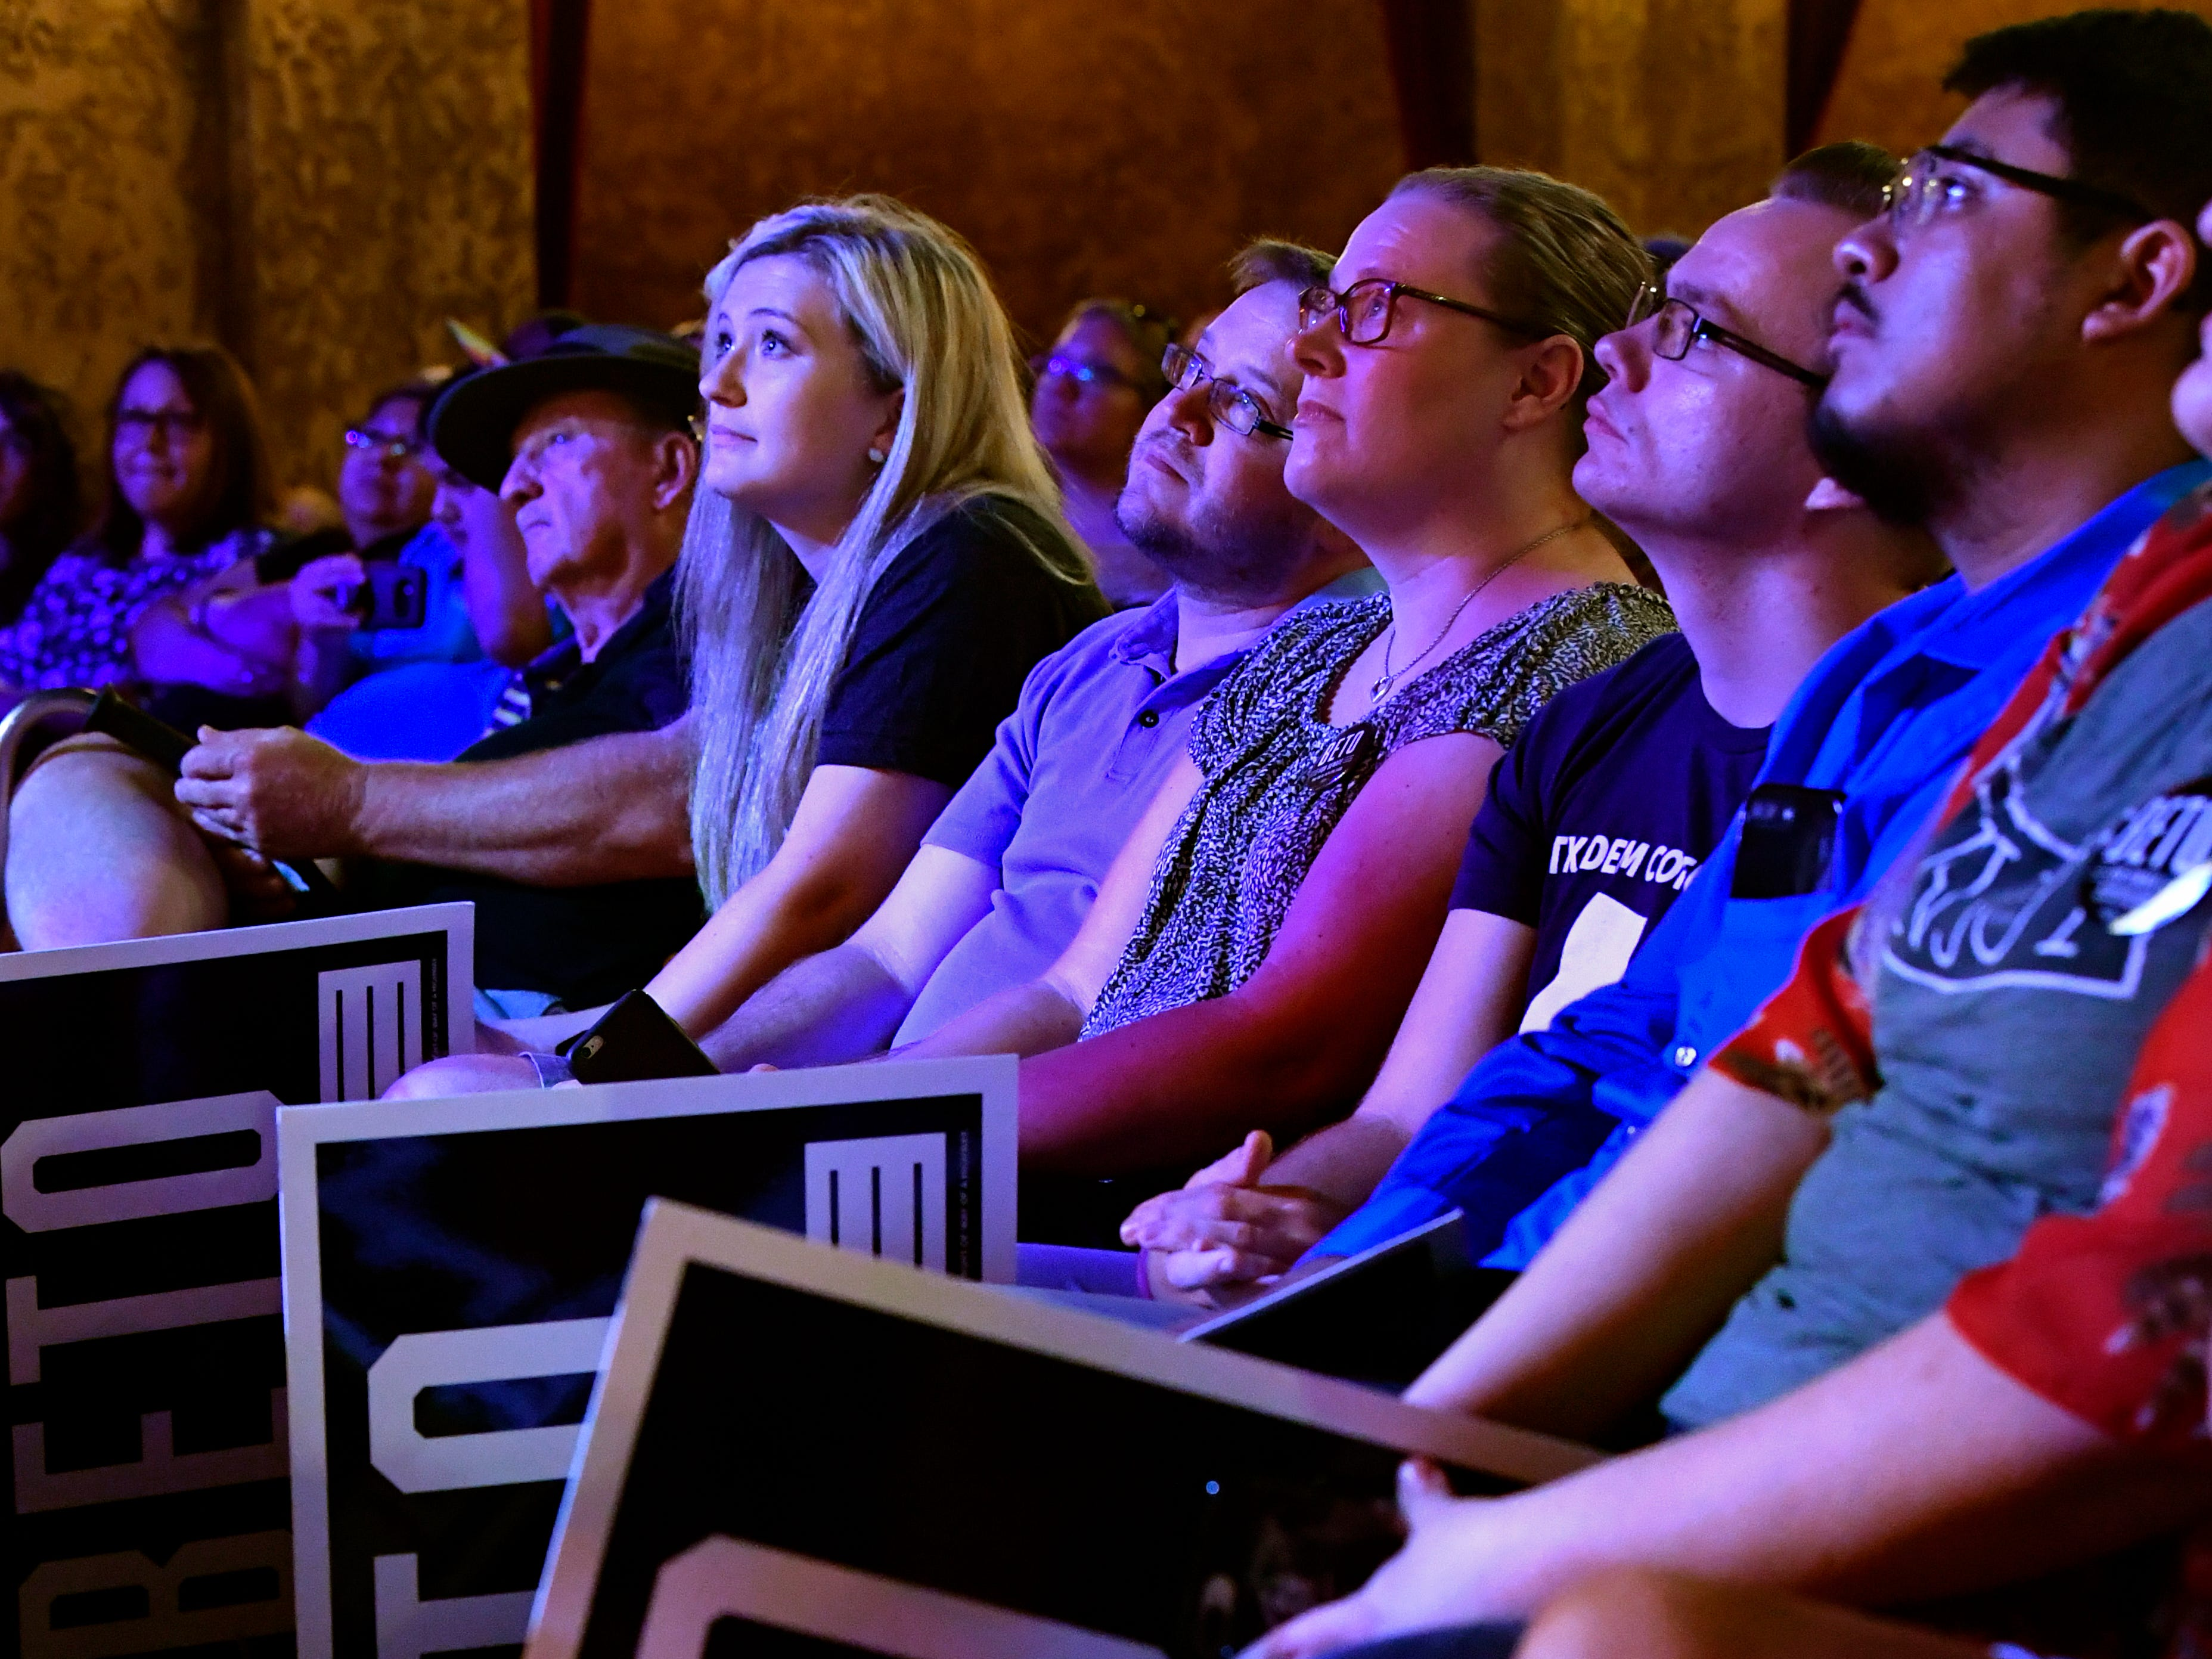 Beto O'Rourke fans watch their candidate speak during a town hall meeting at the Paramount Theatre August 2, 2018. Five Democrats, including O'Rourke who hopes to unseat Republican Senator Ted Cruz, spoke to a crowd of nearly 800 people.